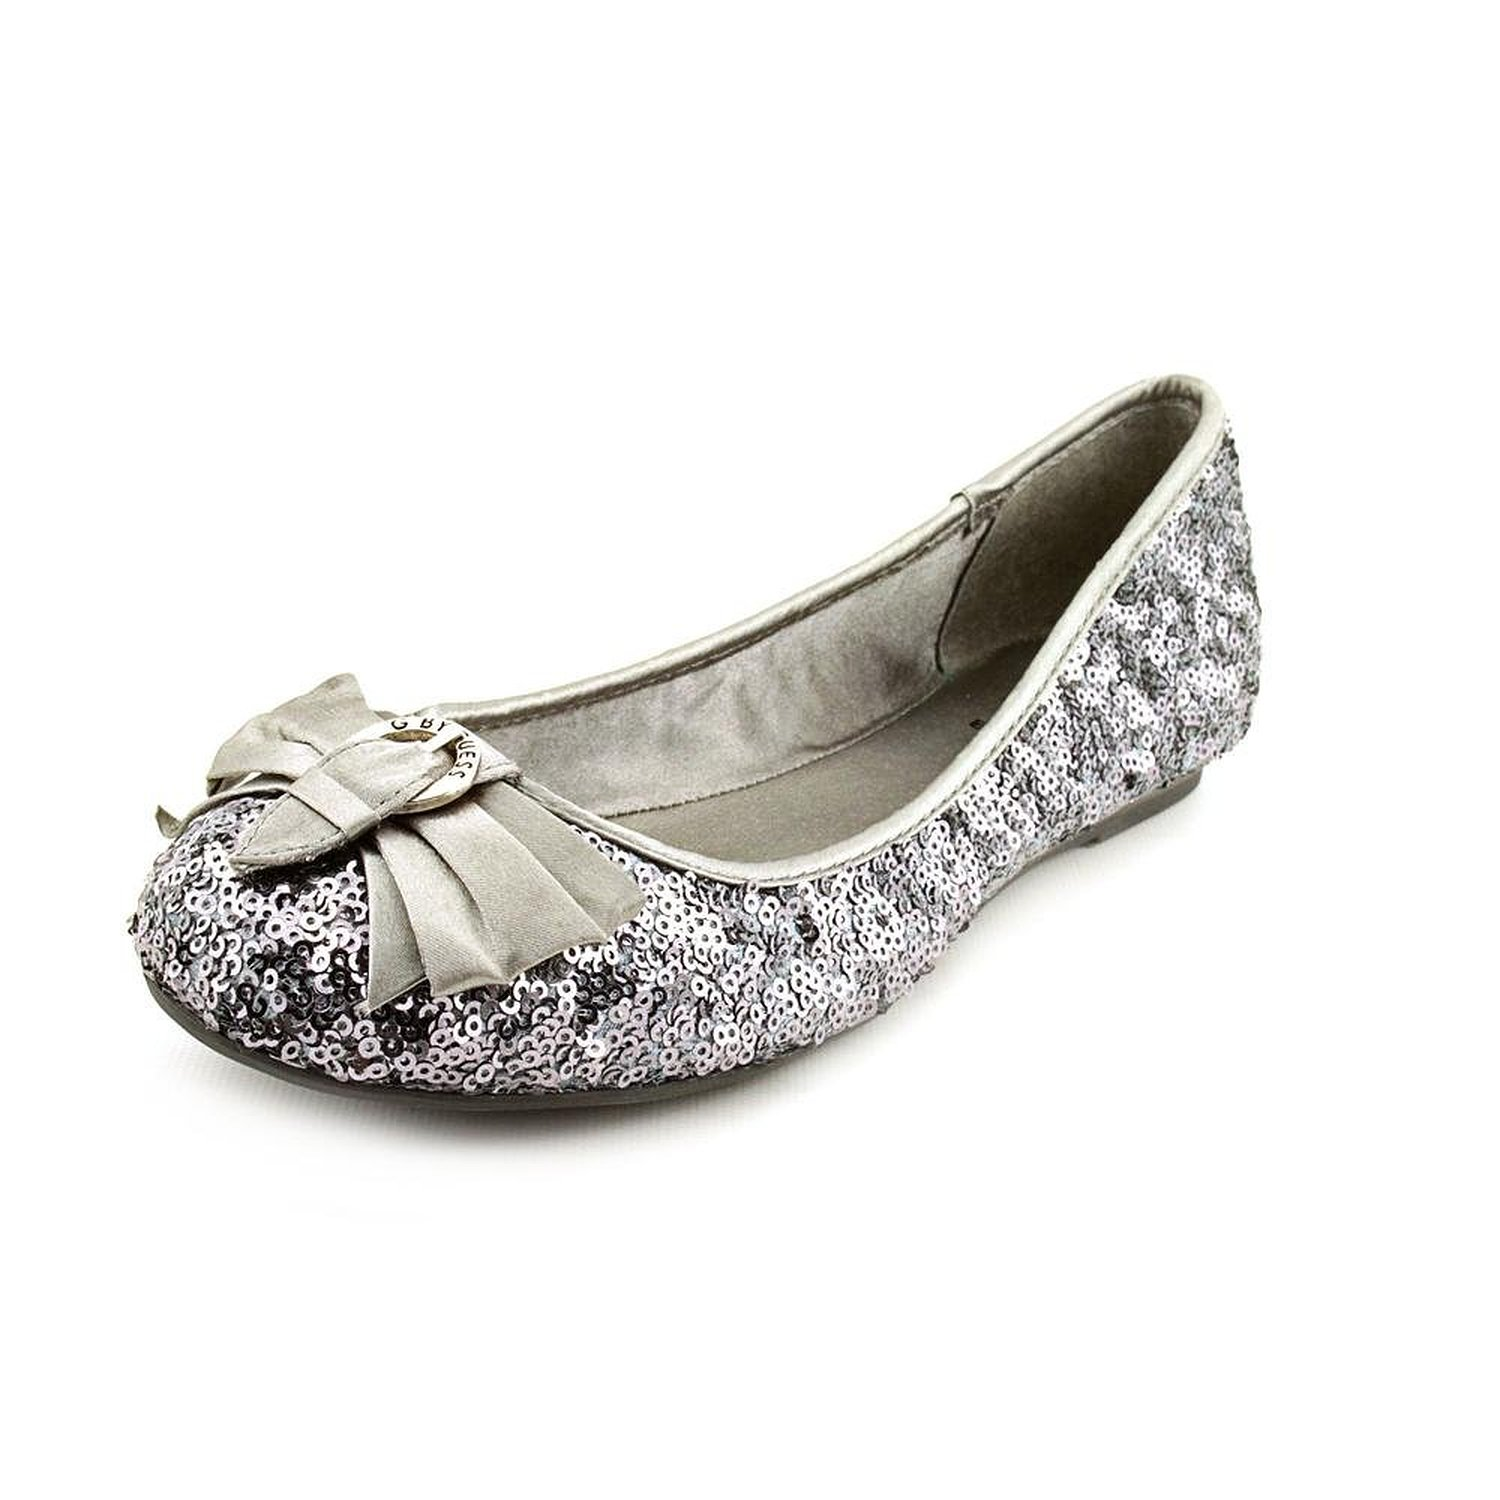 Amazon.com: g by guess women's fruity2 round toe sequin flats in pewter multi size 10: shoes